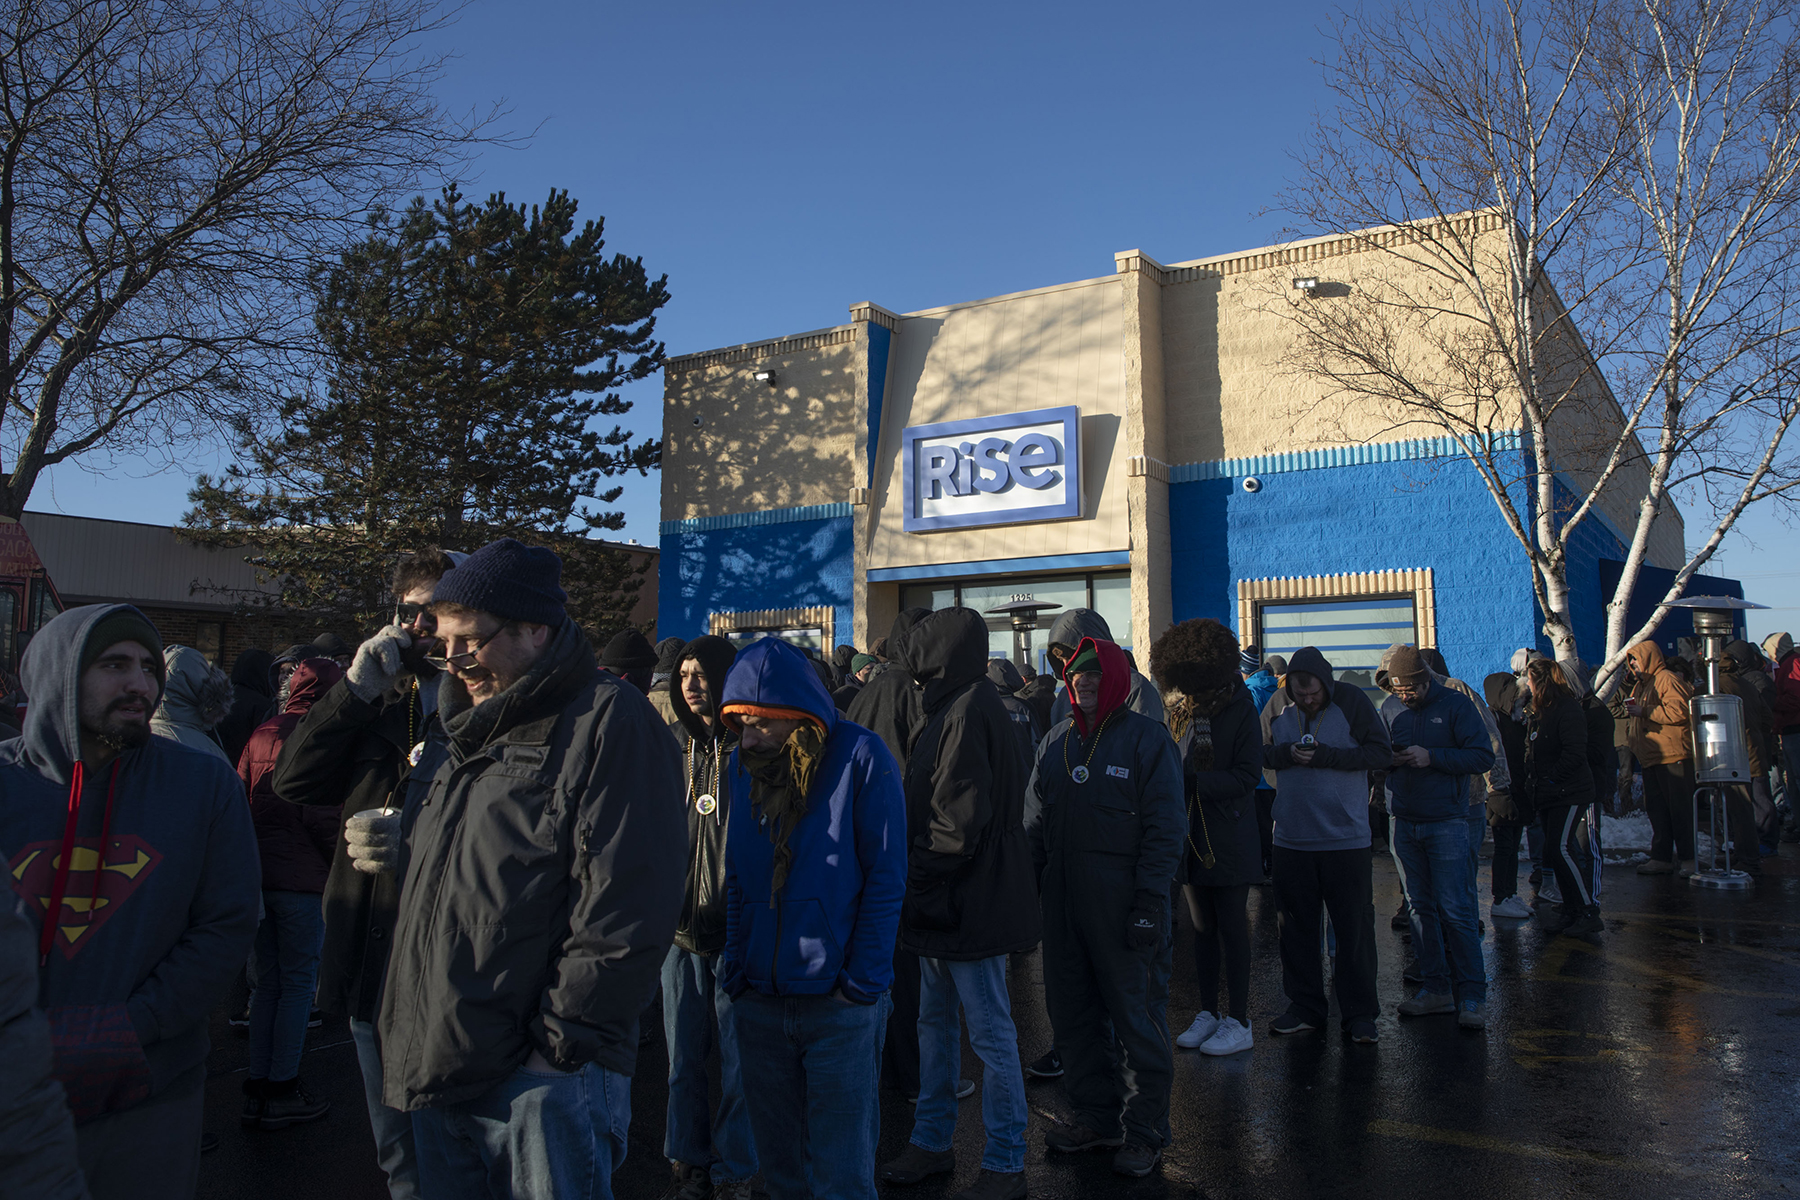 "People wait in line to enter the Green Thumb Industries Rise Mundelein dispensary in Mundelein, Illinois, U.S., on Wednesday, Jan. 1, 2020. Illinois' legalization of recreational pot is likely to be the industry's ""most significant fundamental catalyst"" in 2020 and Cresco Labs Inc. and Green Thumb Industries Inc. will benefit the most, according to investment firm Compass Point. Photographer: Daniel Acker/Bloomberg via Getty Images"